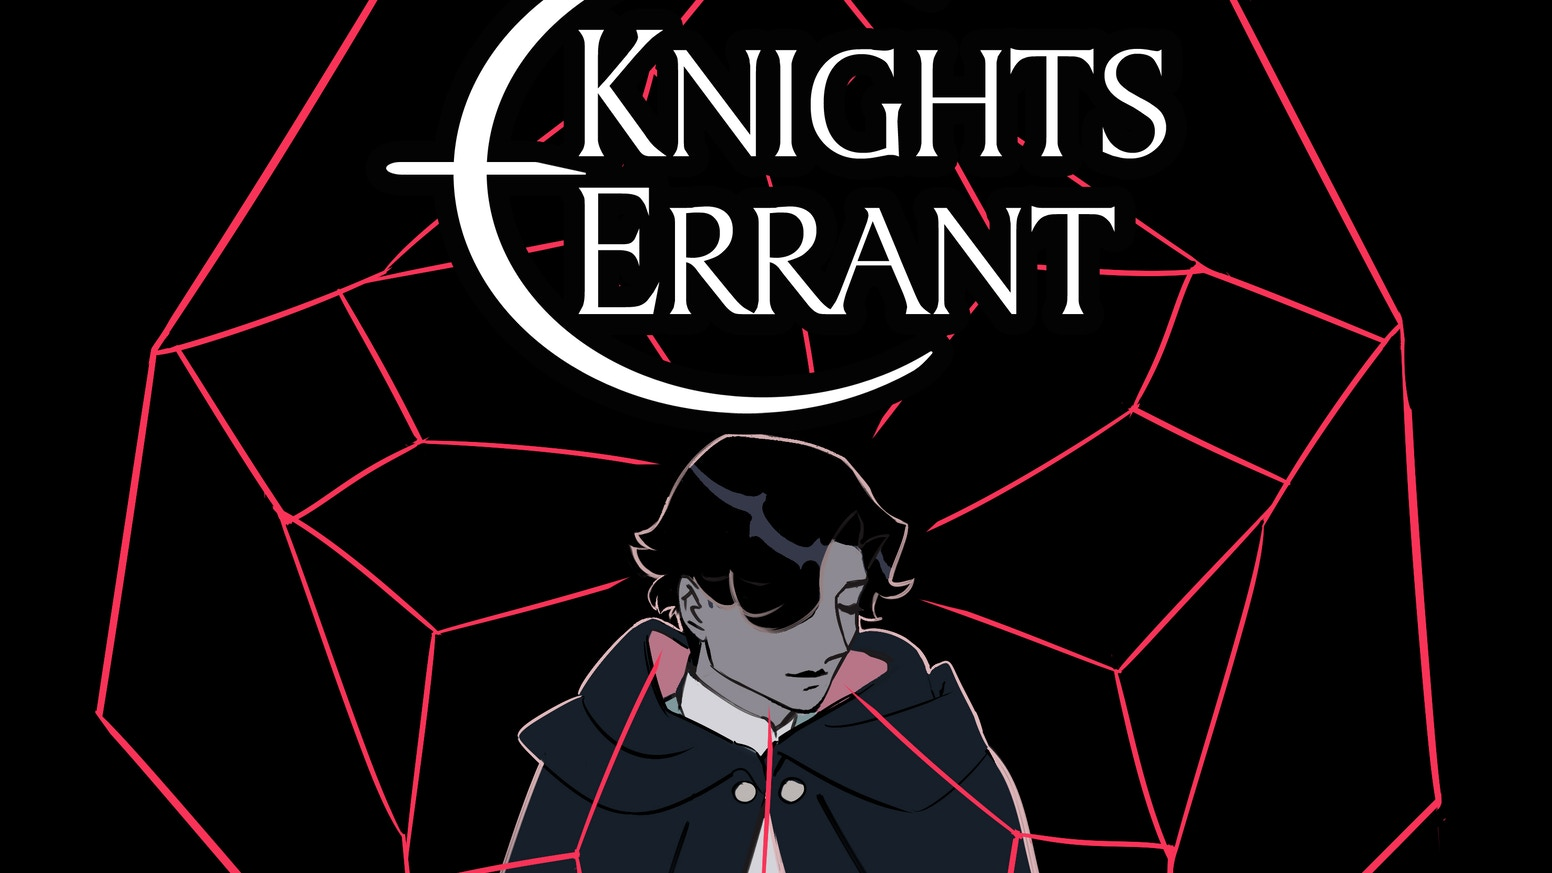 At long last, a deluxe paperback for the webcomic epic! A political drama about gender, religion, and revenge.